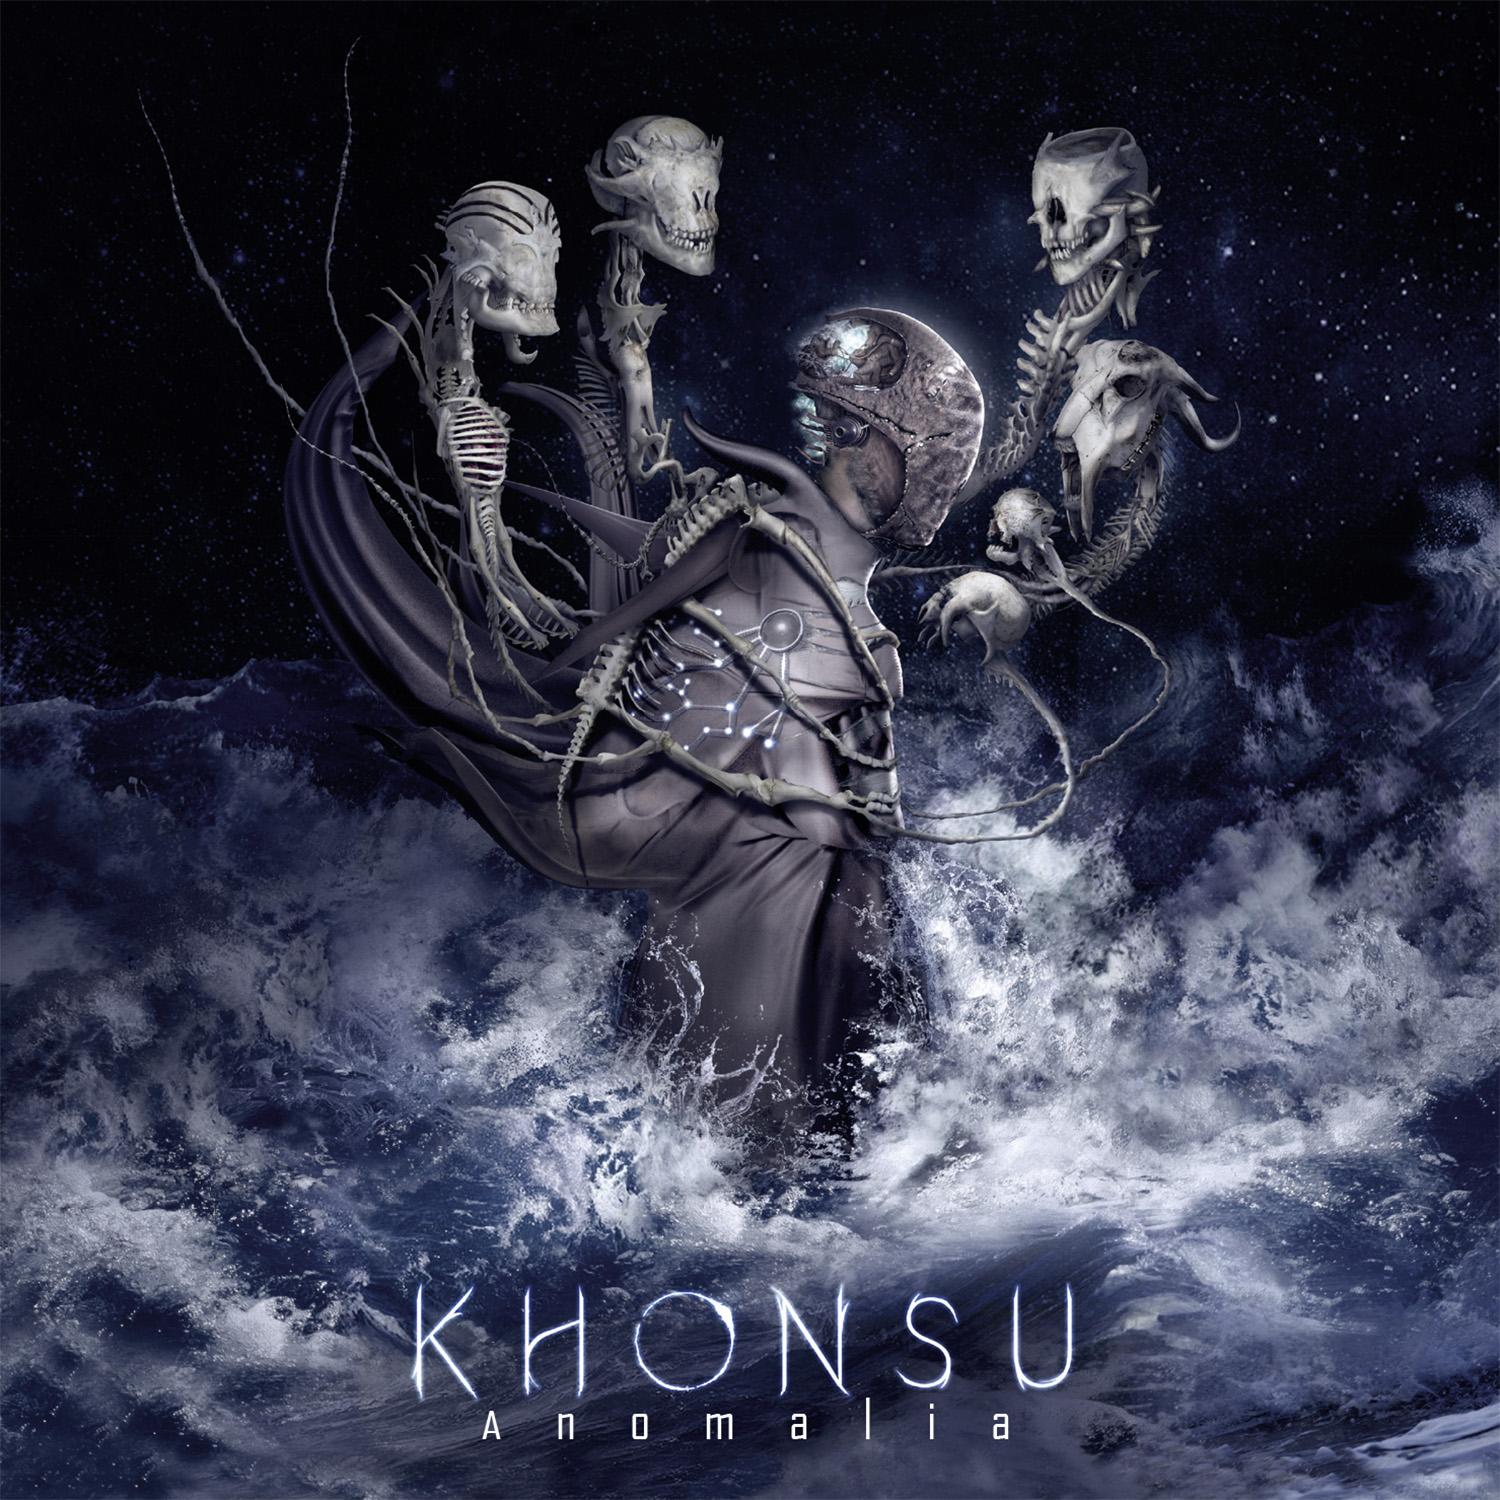 Khonsu – Anomalia Review